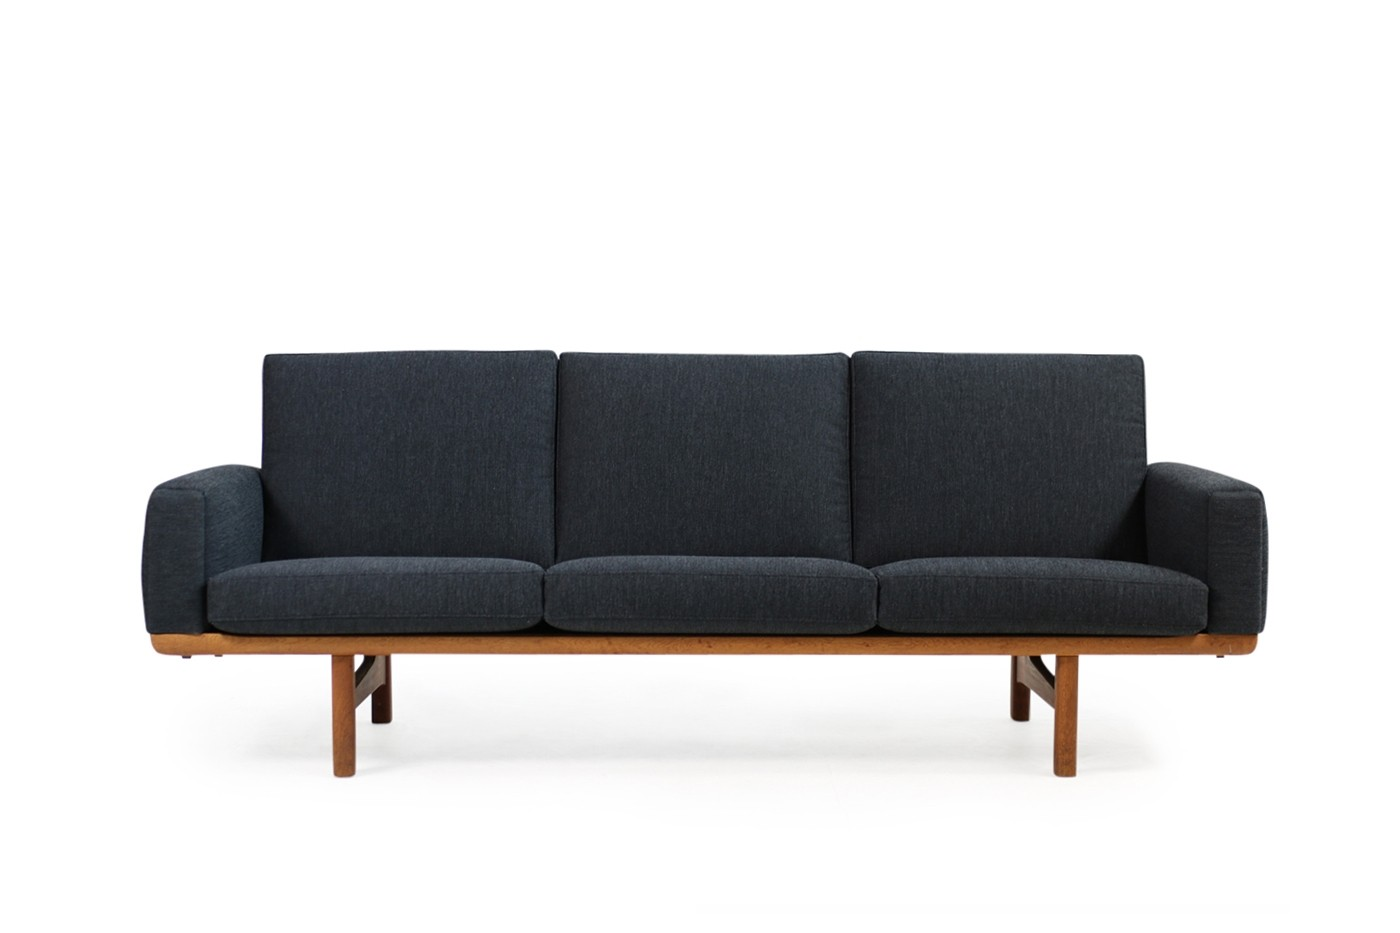 hans j wegner sofa ge 236 3 oak new upholstery getama 1950s objects. Black Bedroom Furniture Sets. Home Design Ideas